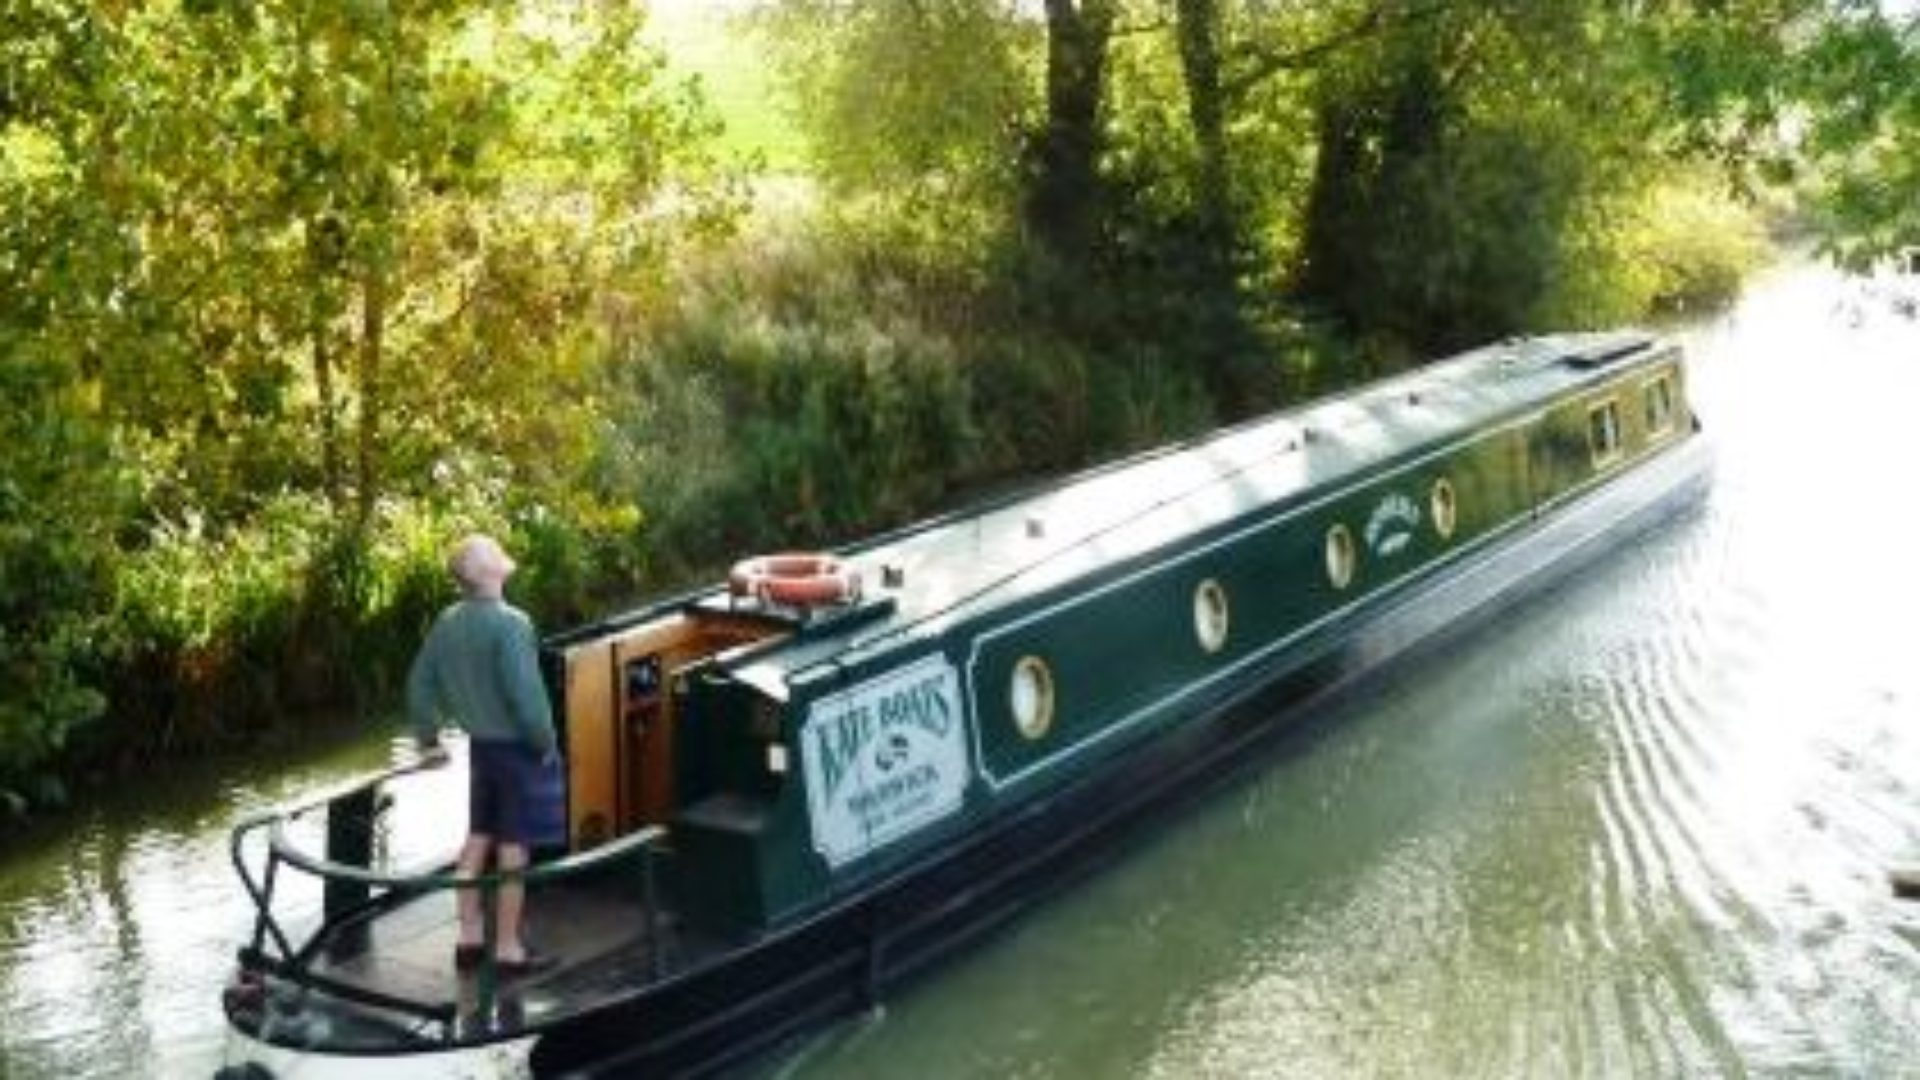 Canal Boat Hire, Canal Boat Holidays, Narrowboat Hire, Narrowboat Holidays,